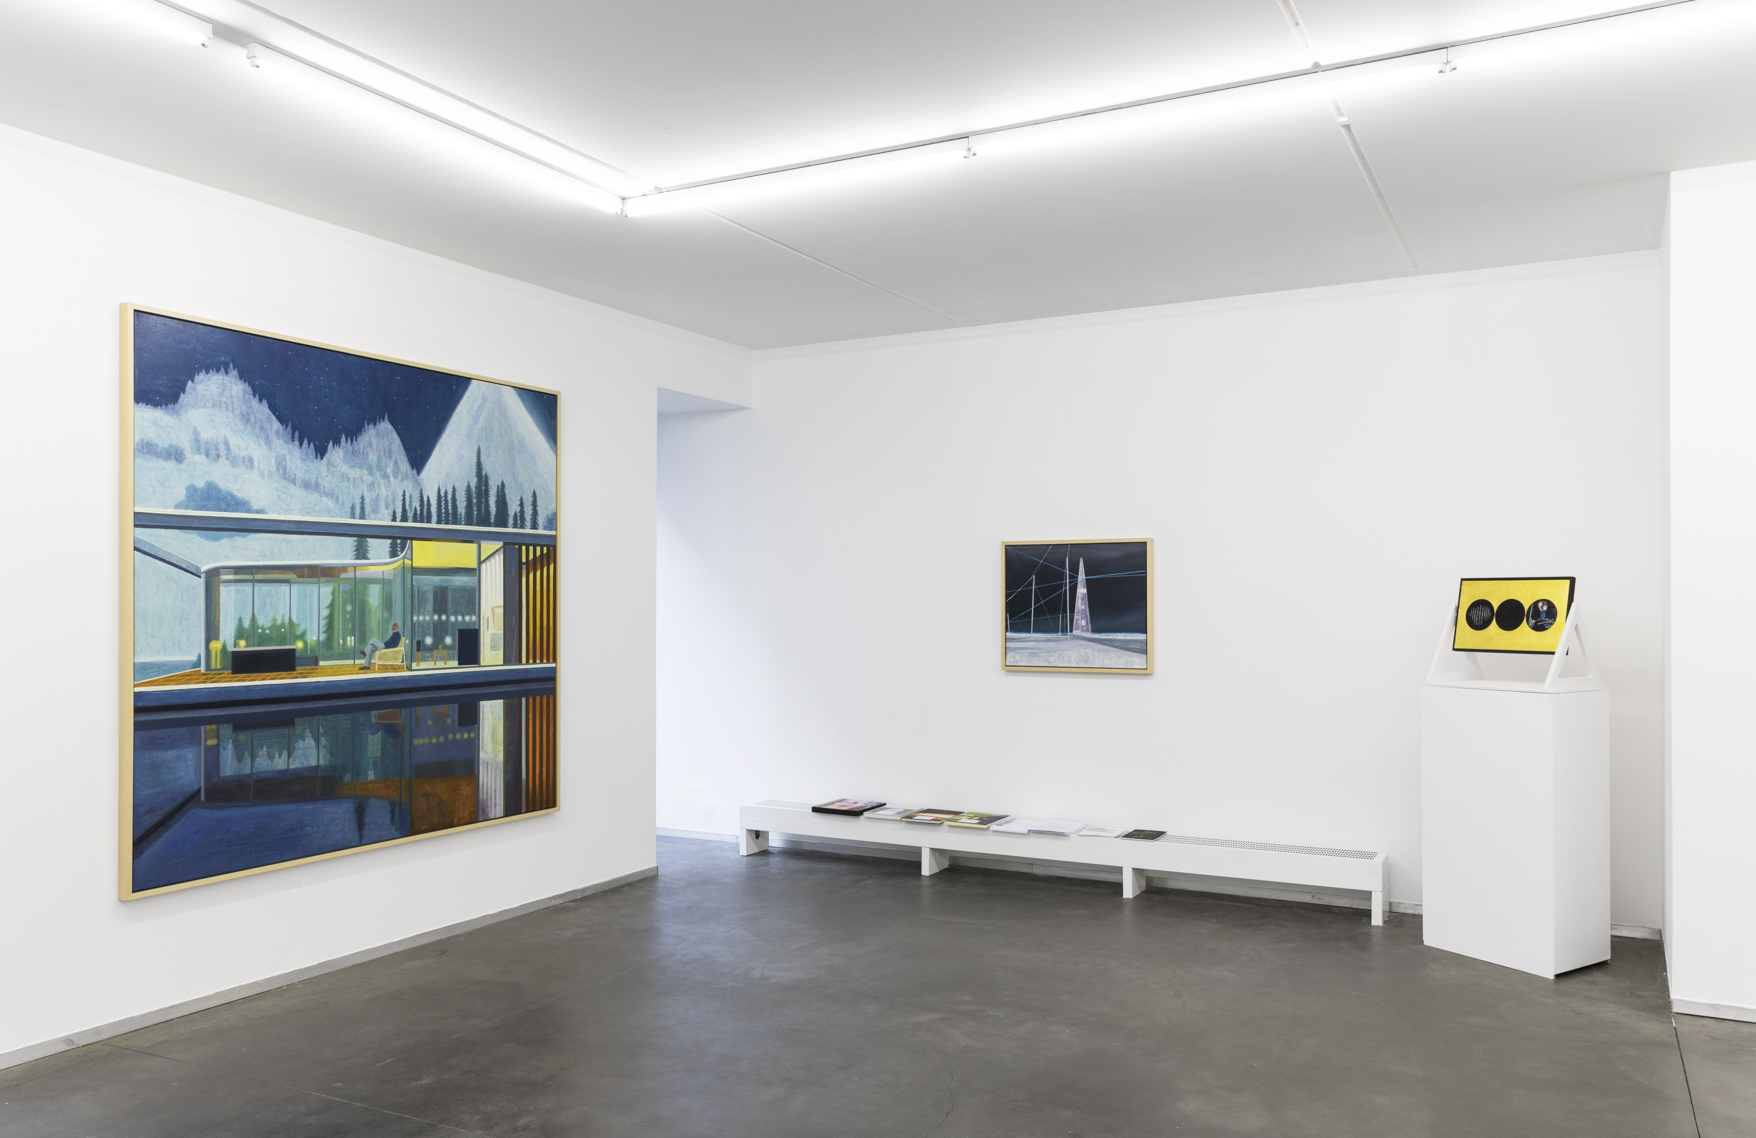 Installation view of Double Dream at NK Gallery